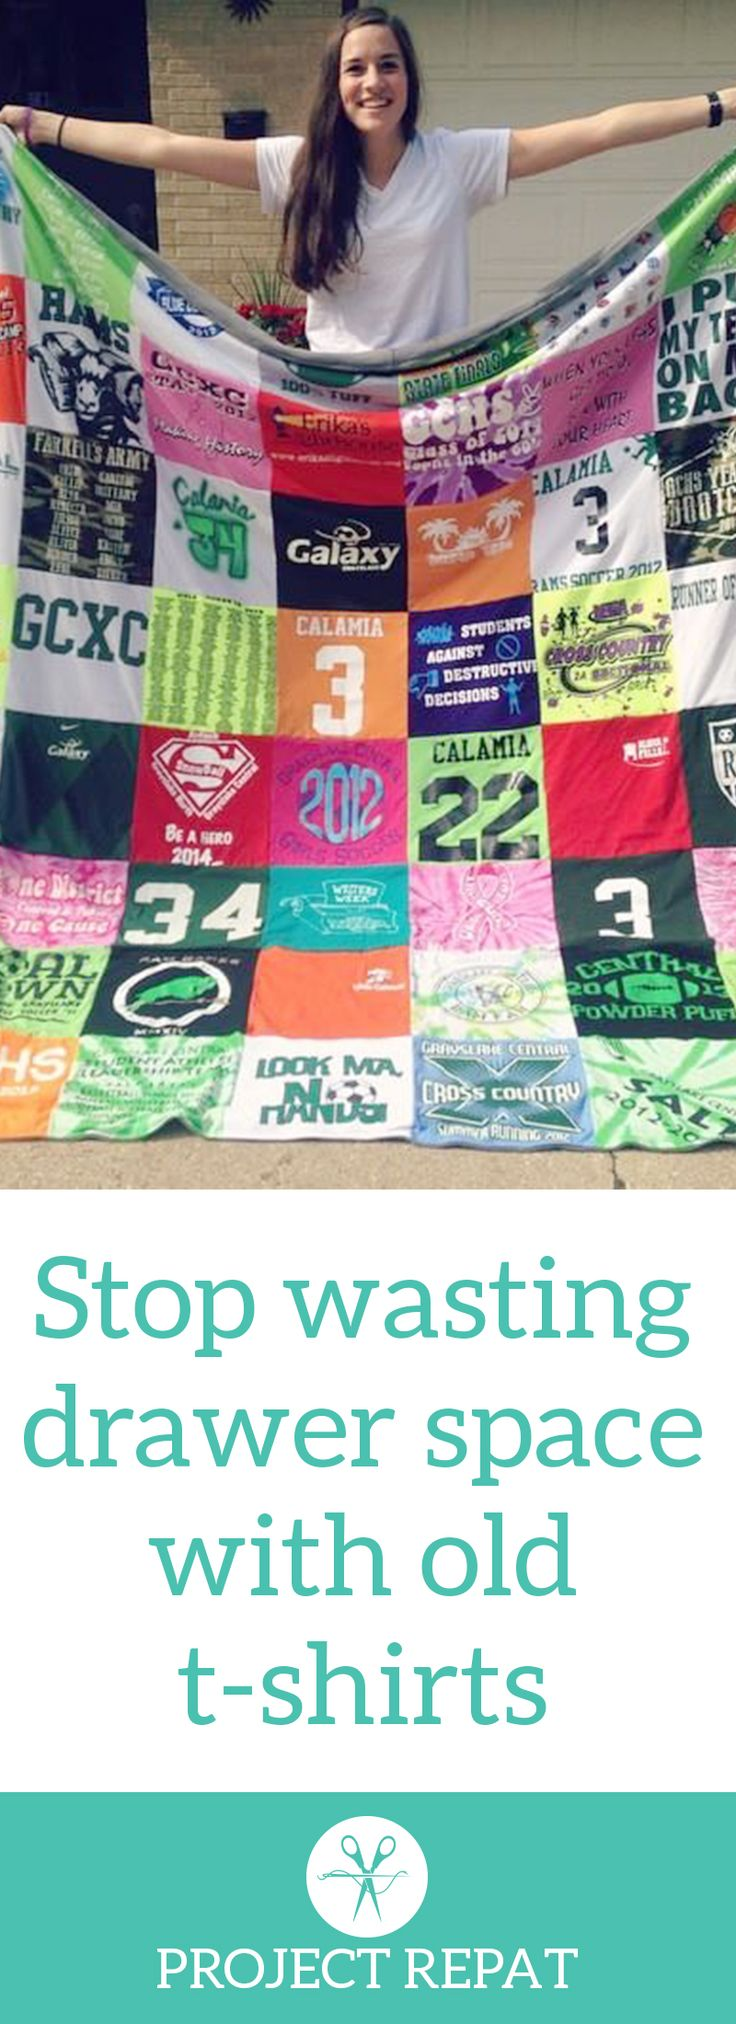 Every t-shirt quilt has a unique story to tell — what will yours say? Learn more about how you can turn t-shirts into a great conversation starter with Project Repat. https://www.projectrepat.com/?utm_source=Pinterest&utm_medium=3.8P